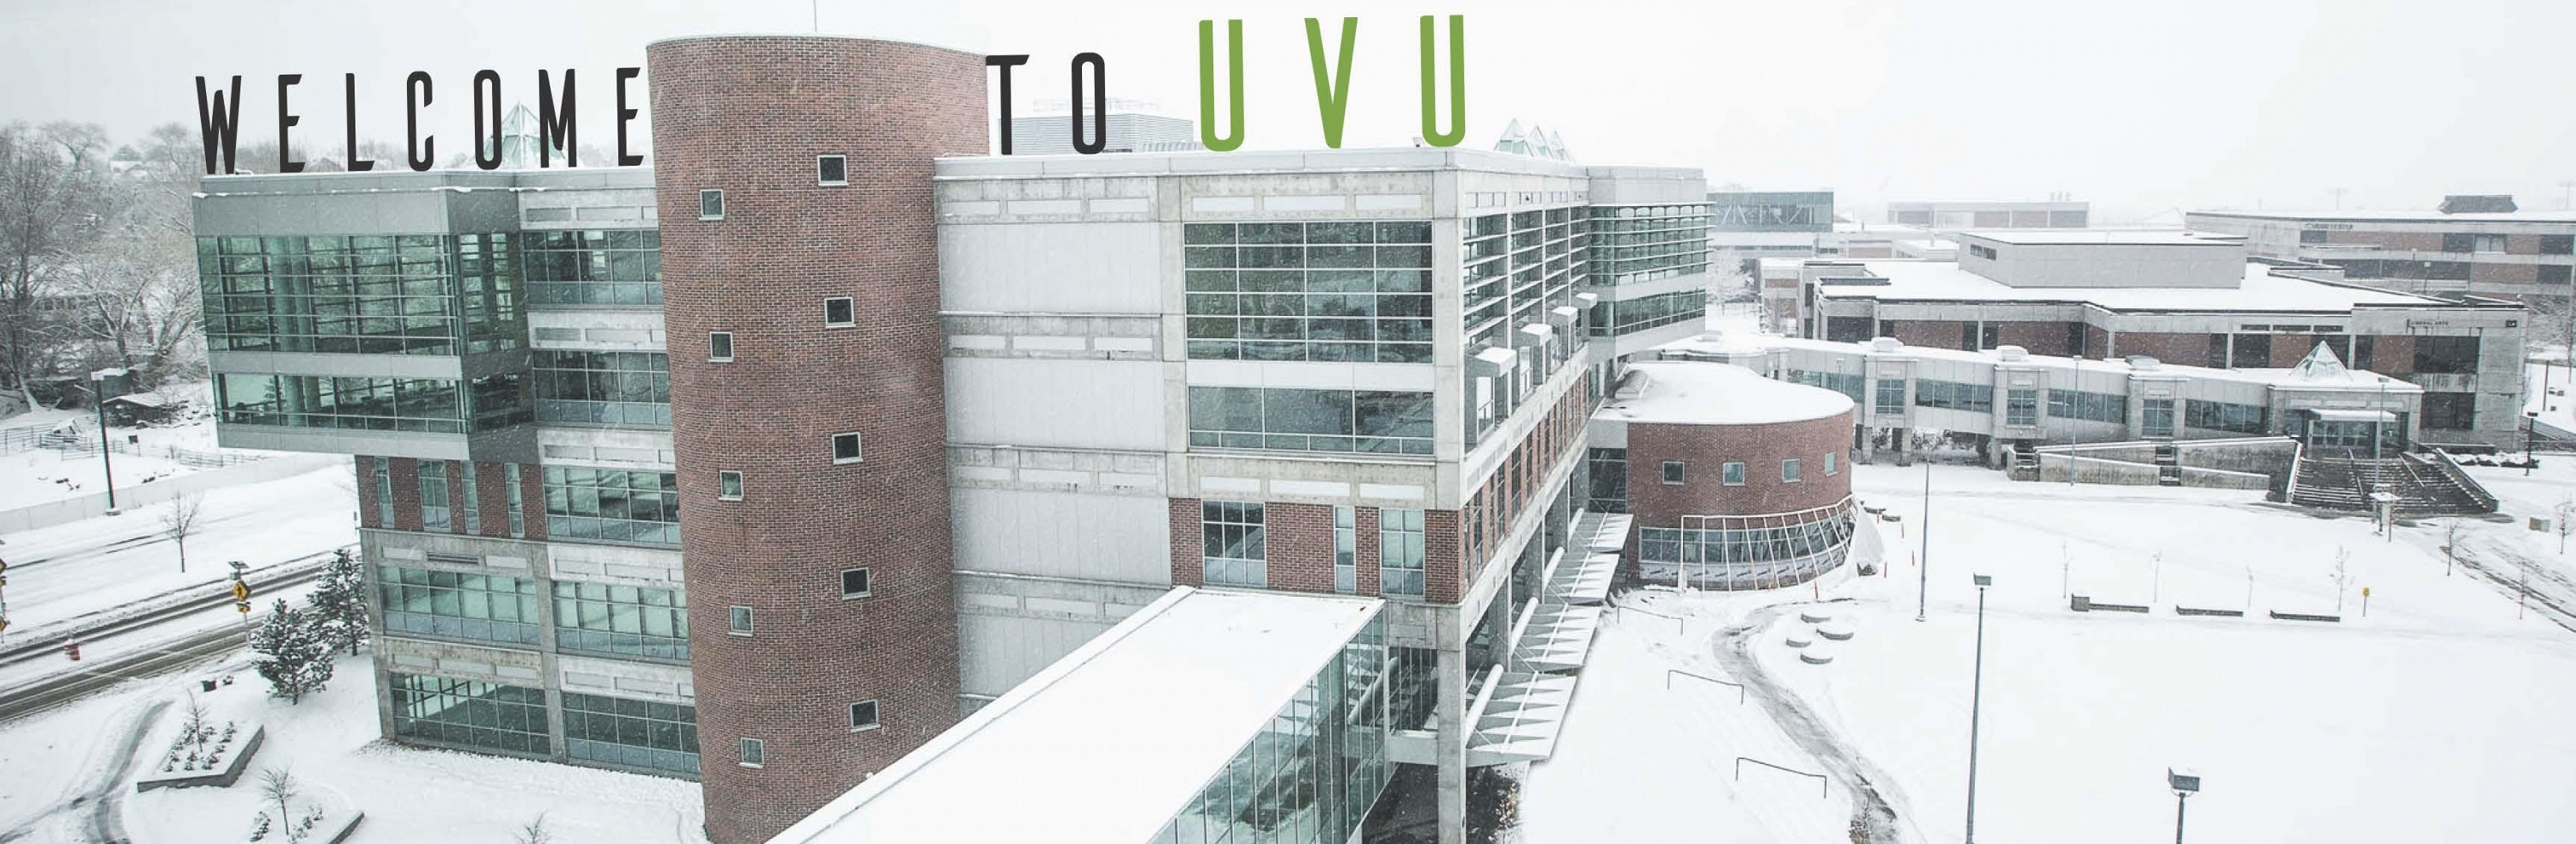 Welcome to UVU - Winter